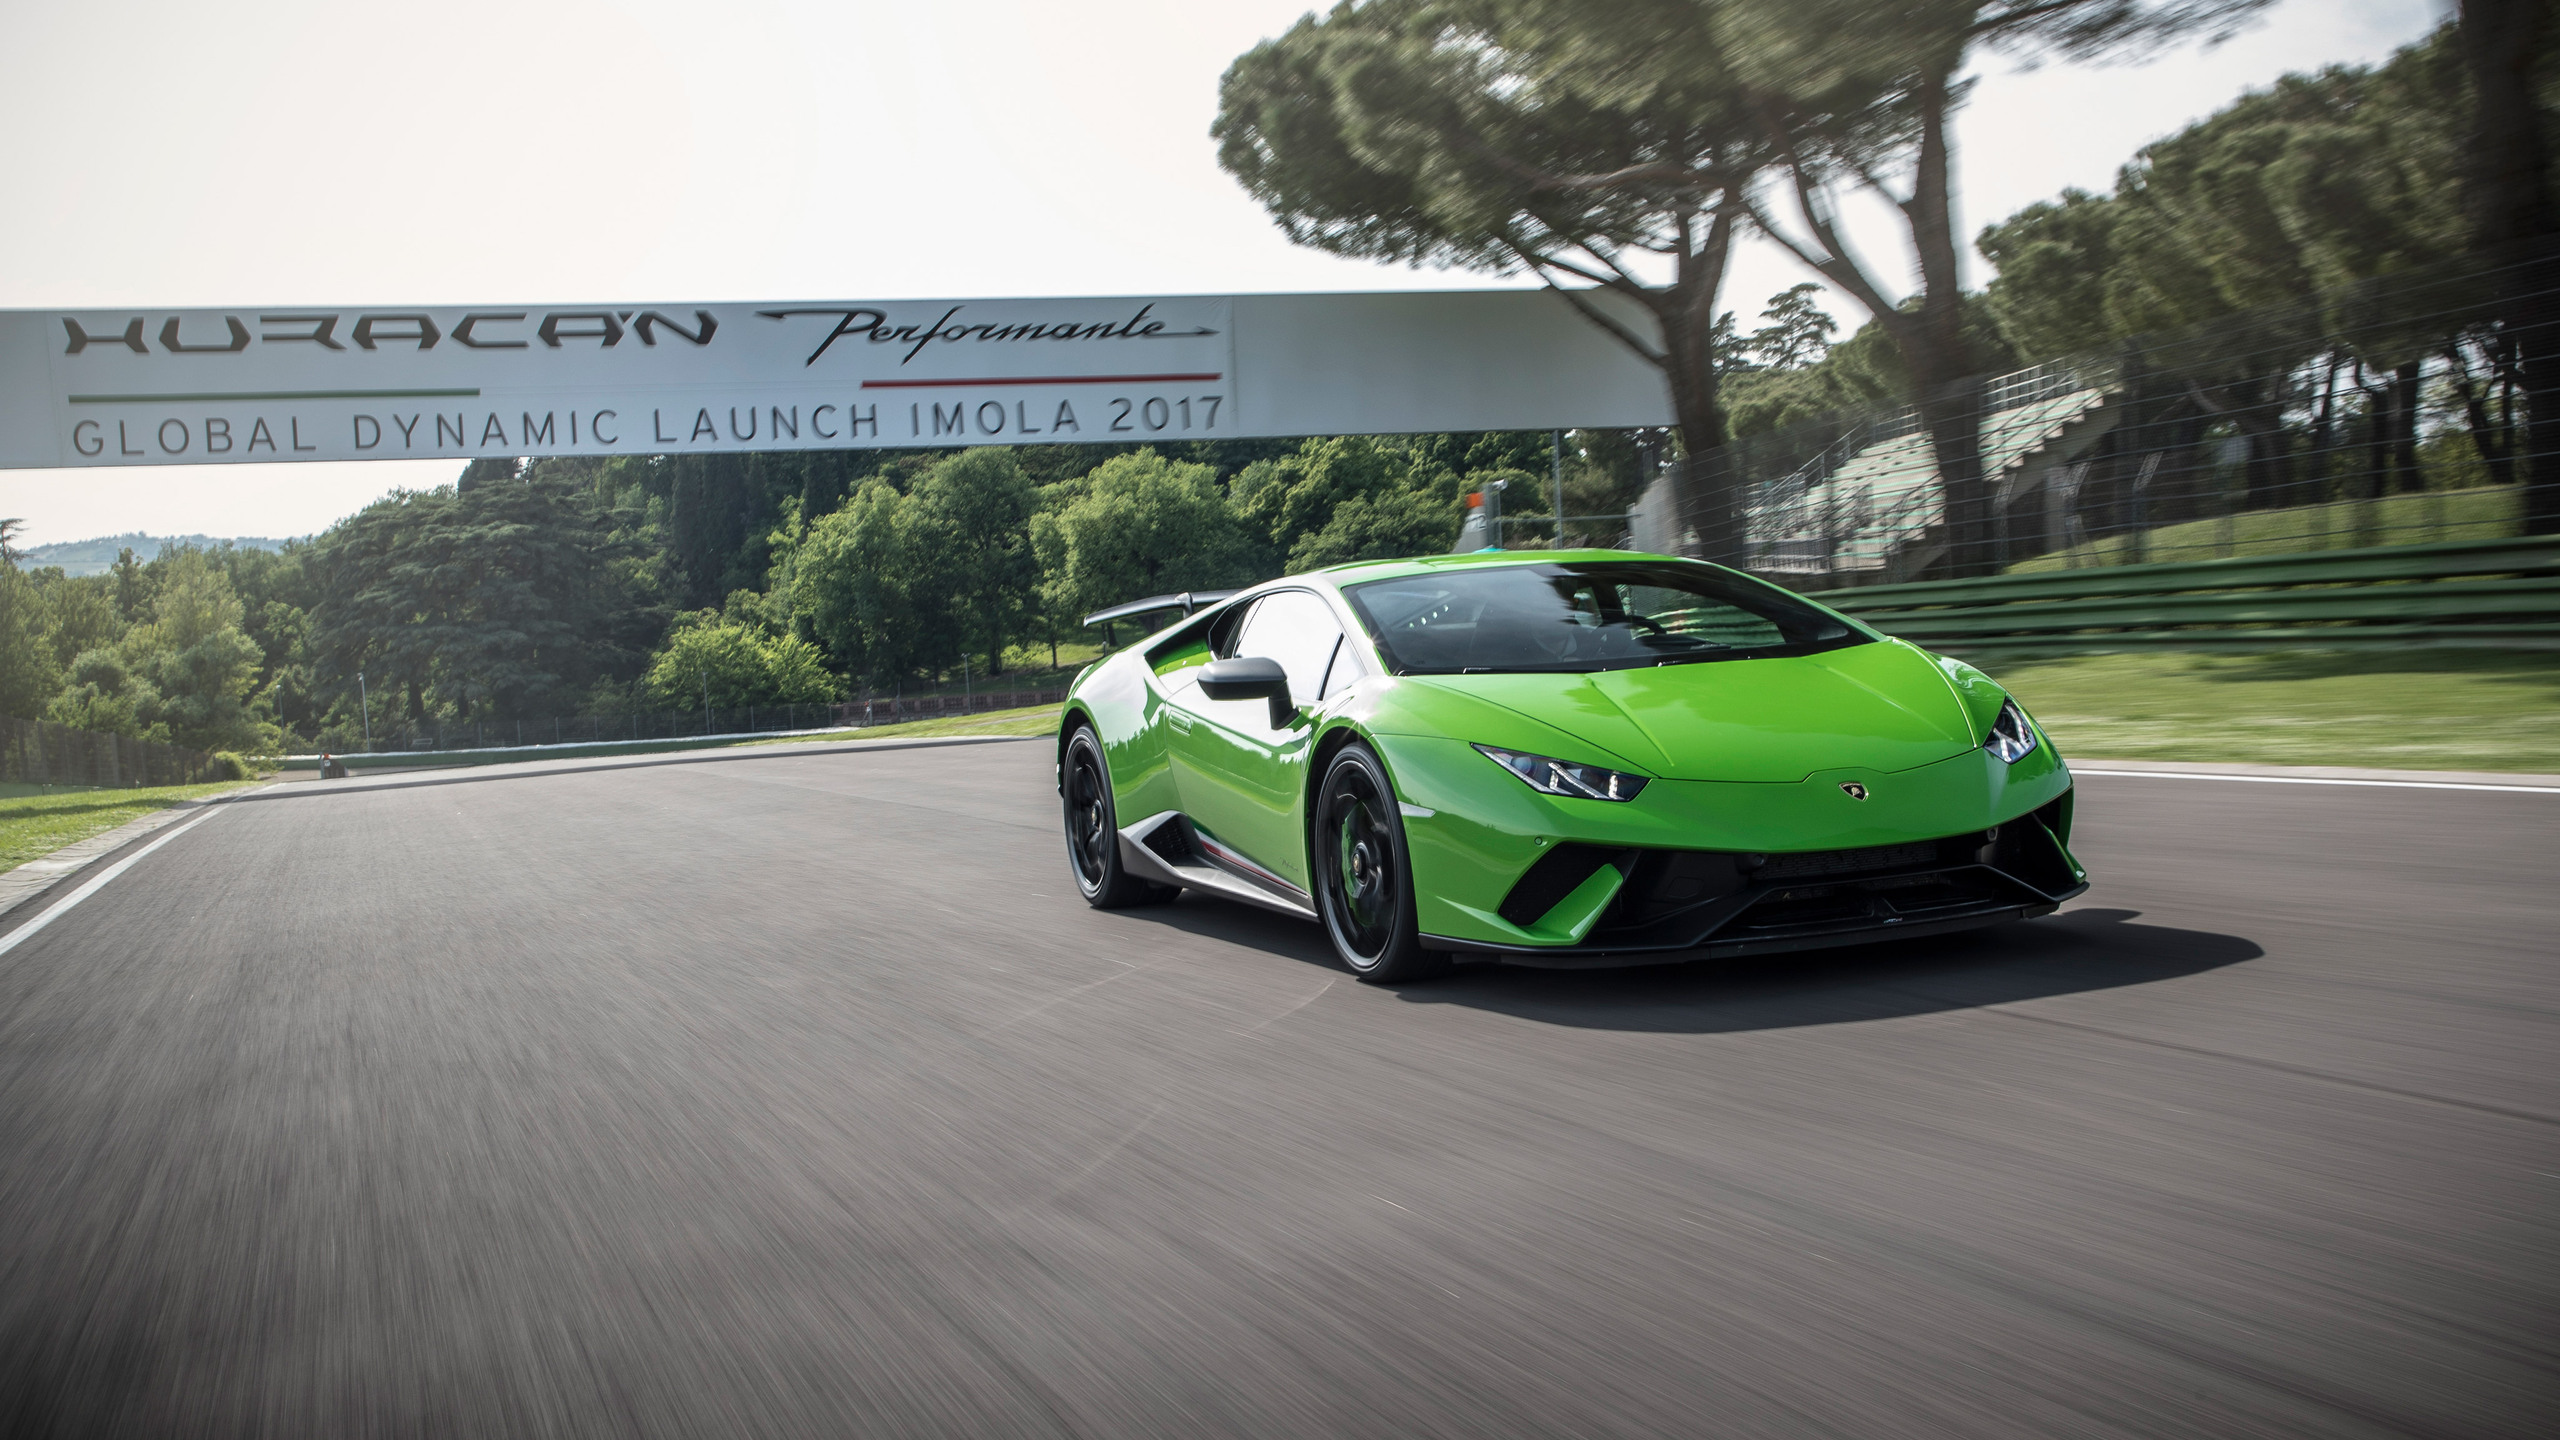 2560x1440 Lamborghini Huracan Performante Super Car 1440p Resolution